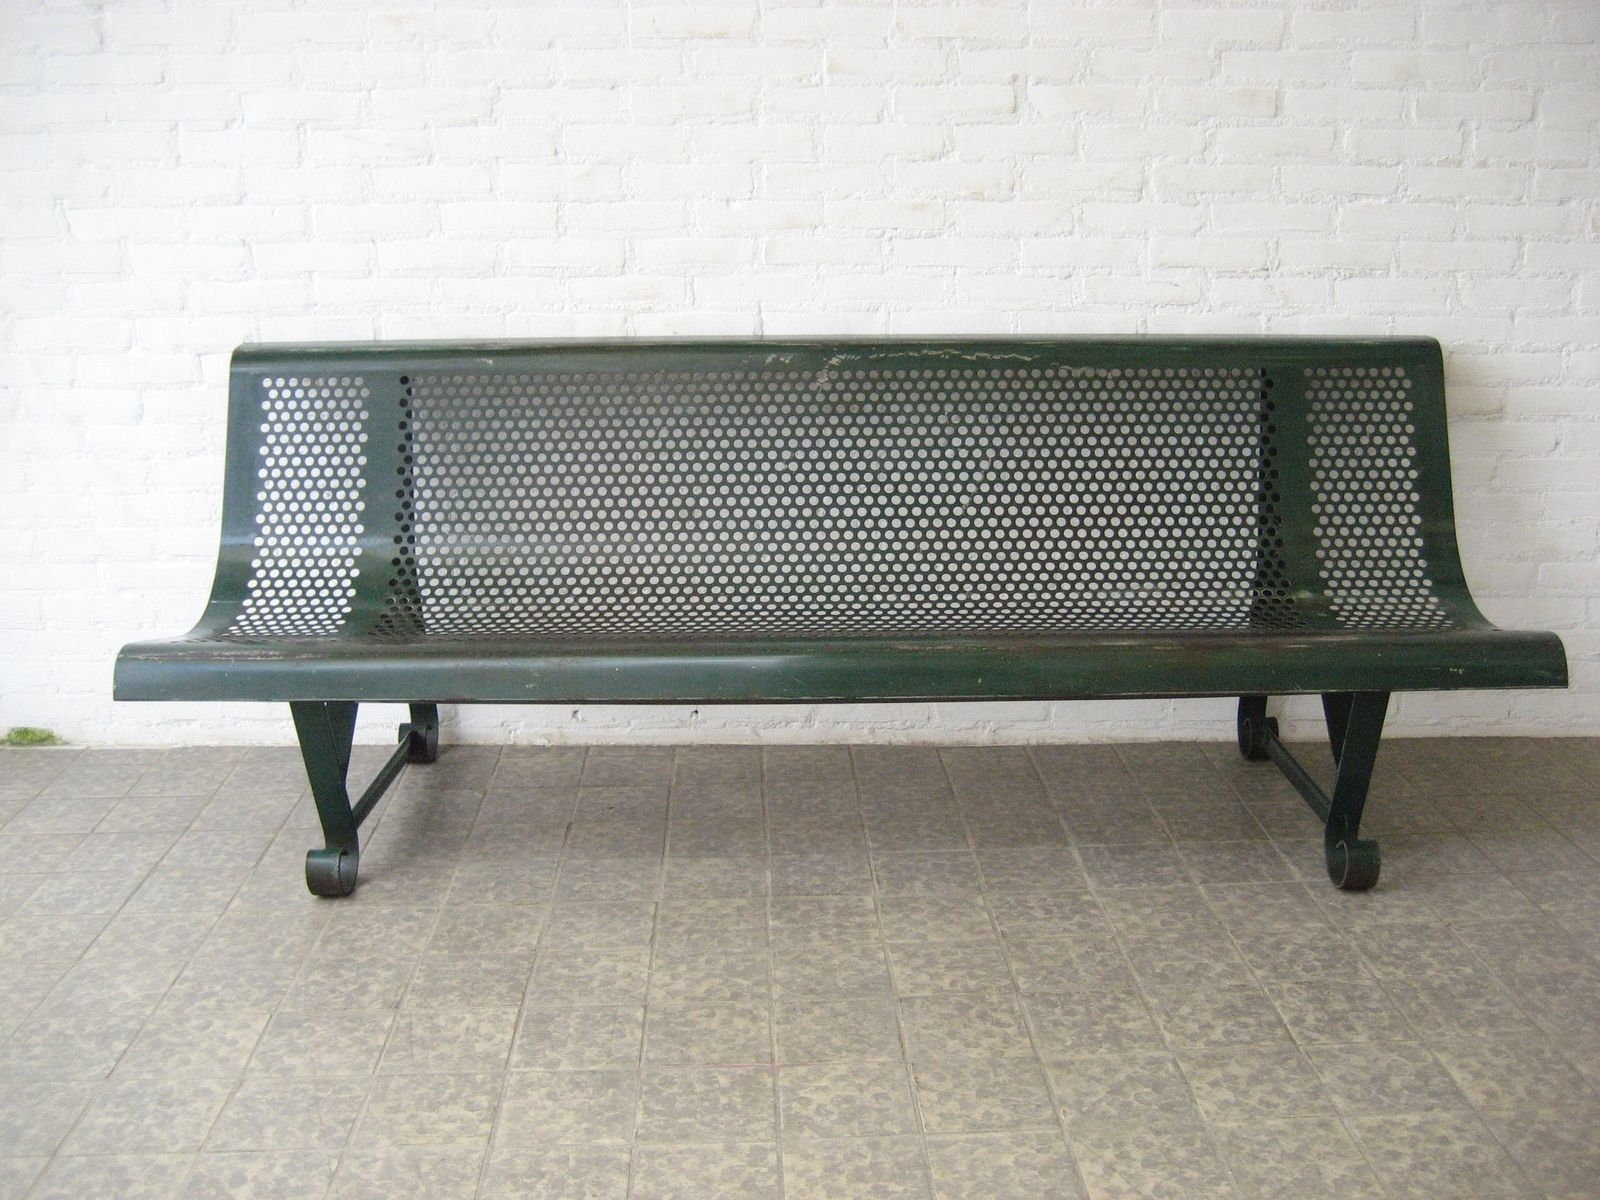 Industrial French Steel Park Bench 1950s For Sale At Pamono